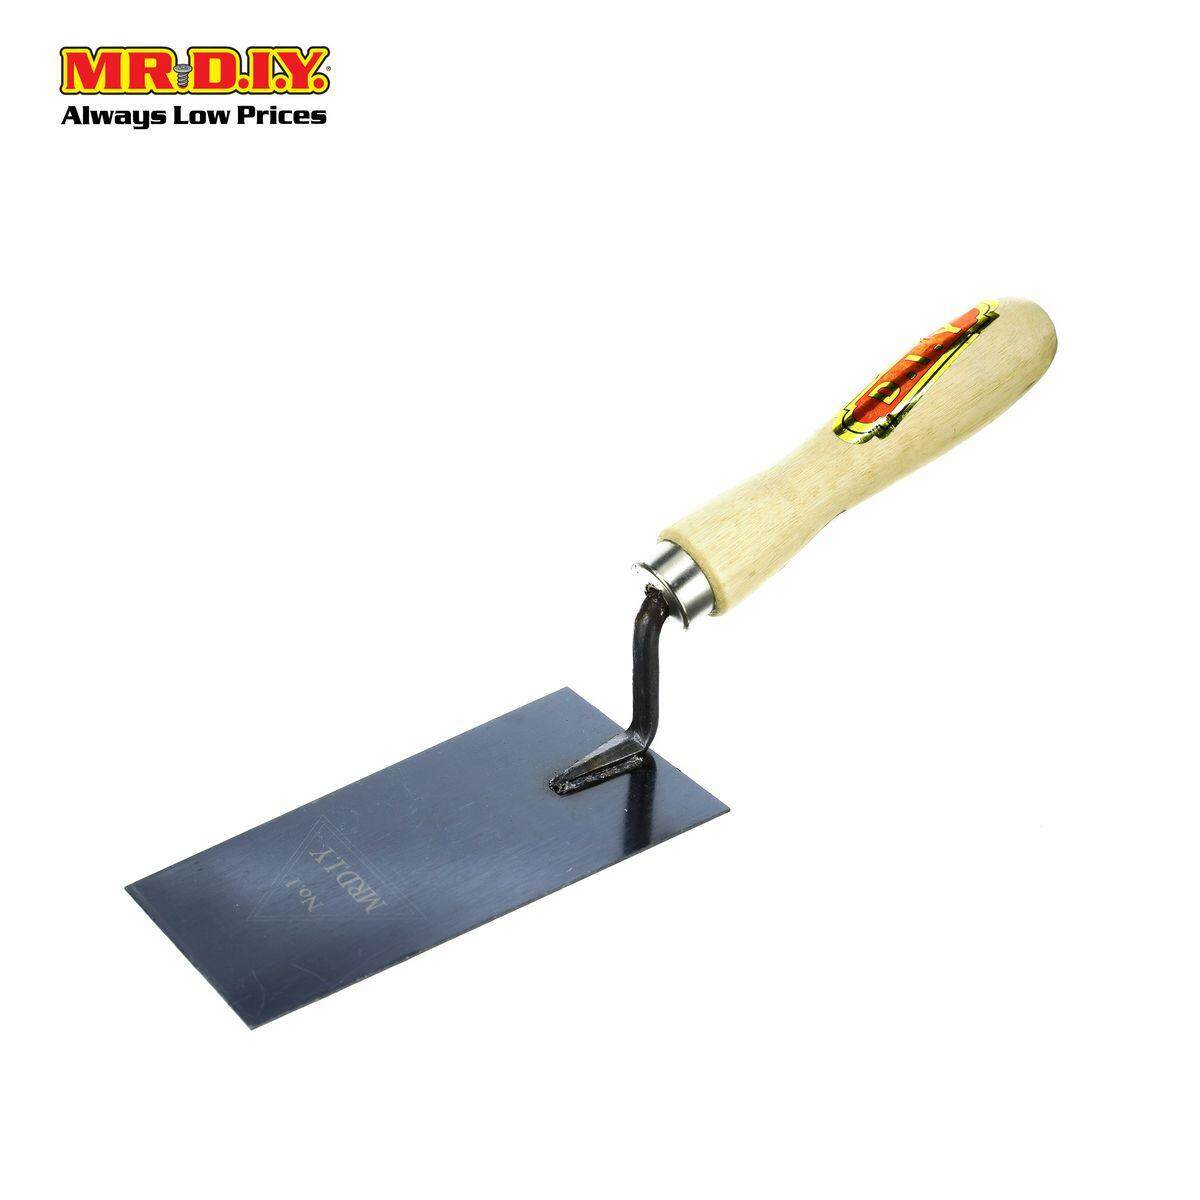 MR DIY Brick Trowel 6 -B